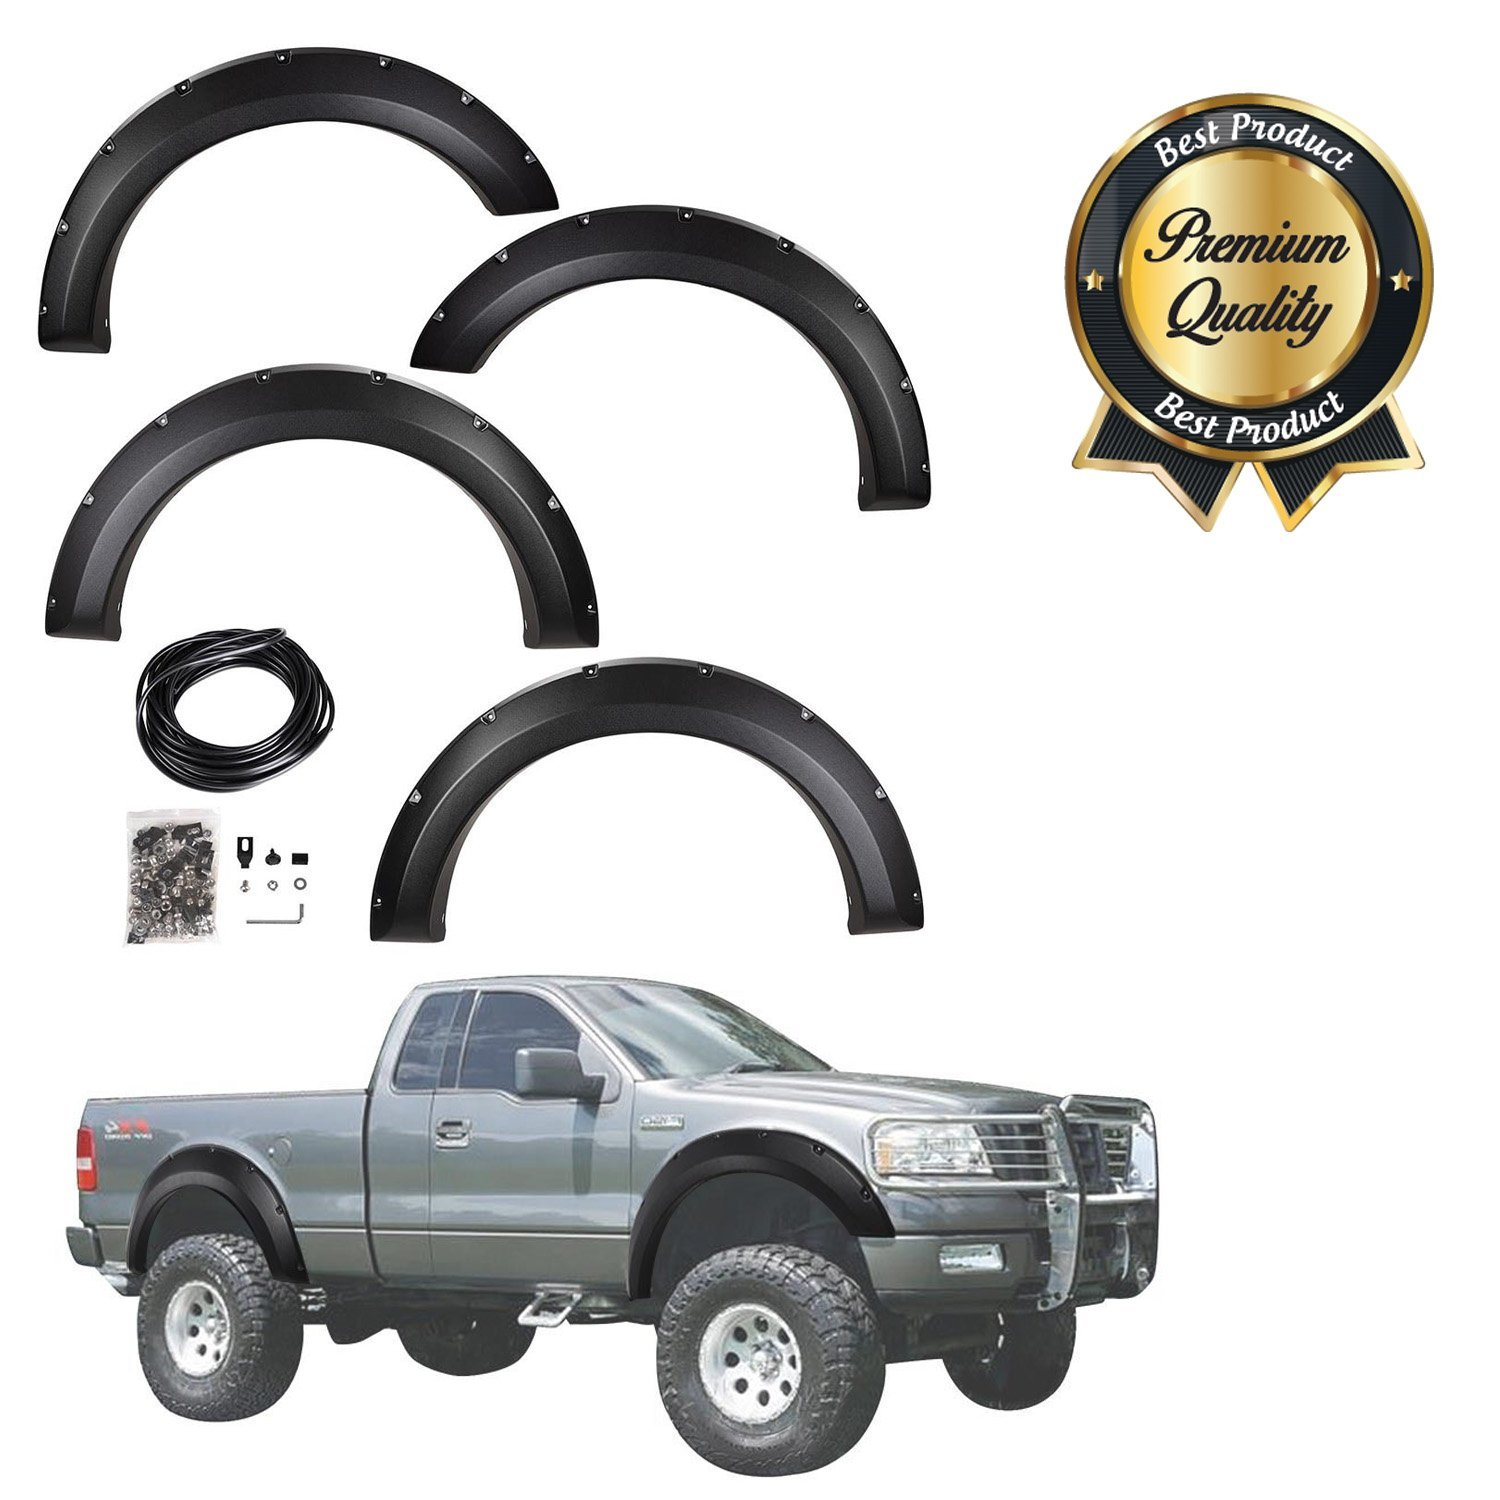 Koval Inc. 04-08 Ford F-250 & F-350 4pcs Fender Flares Set (4pcs for 04-08 Ford)